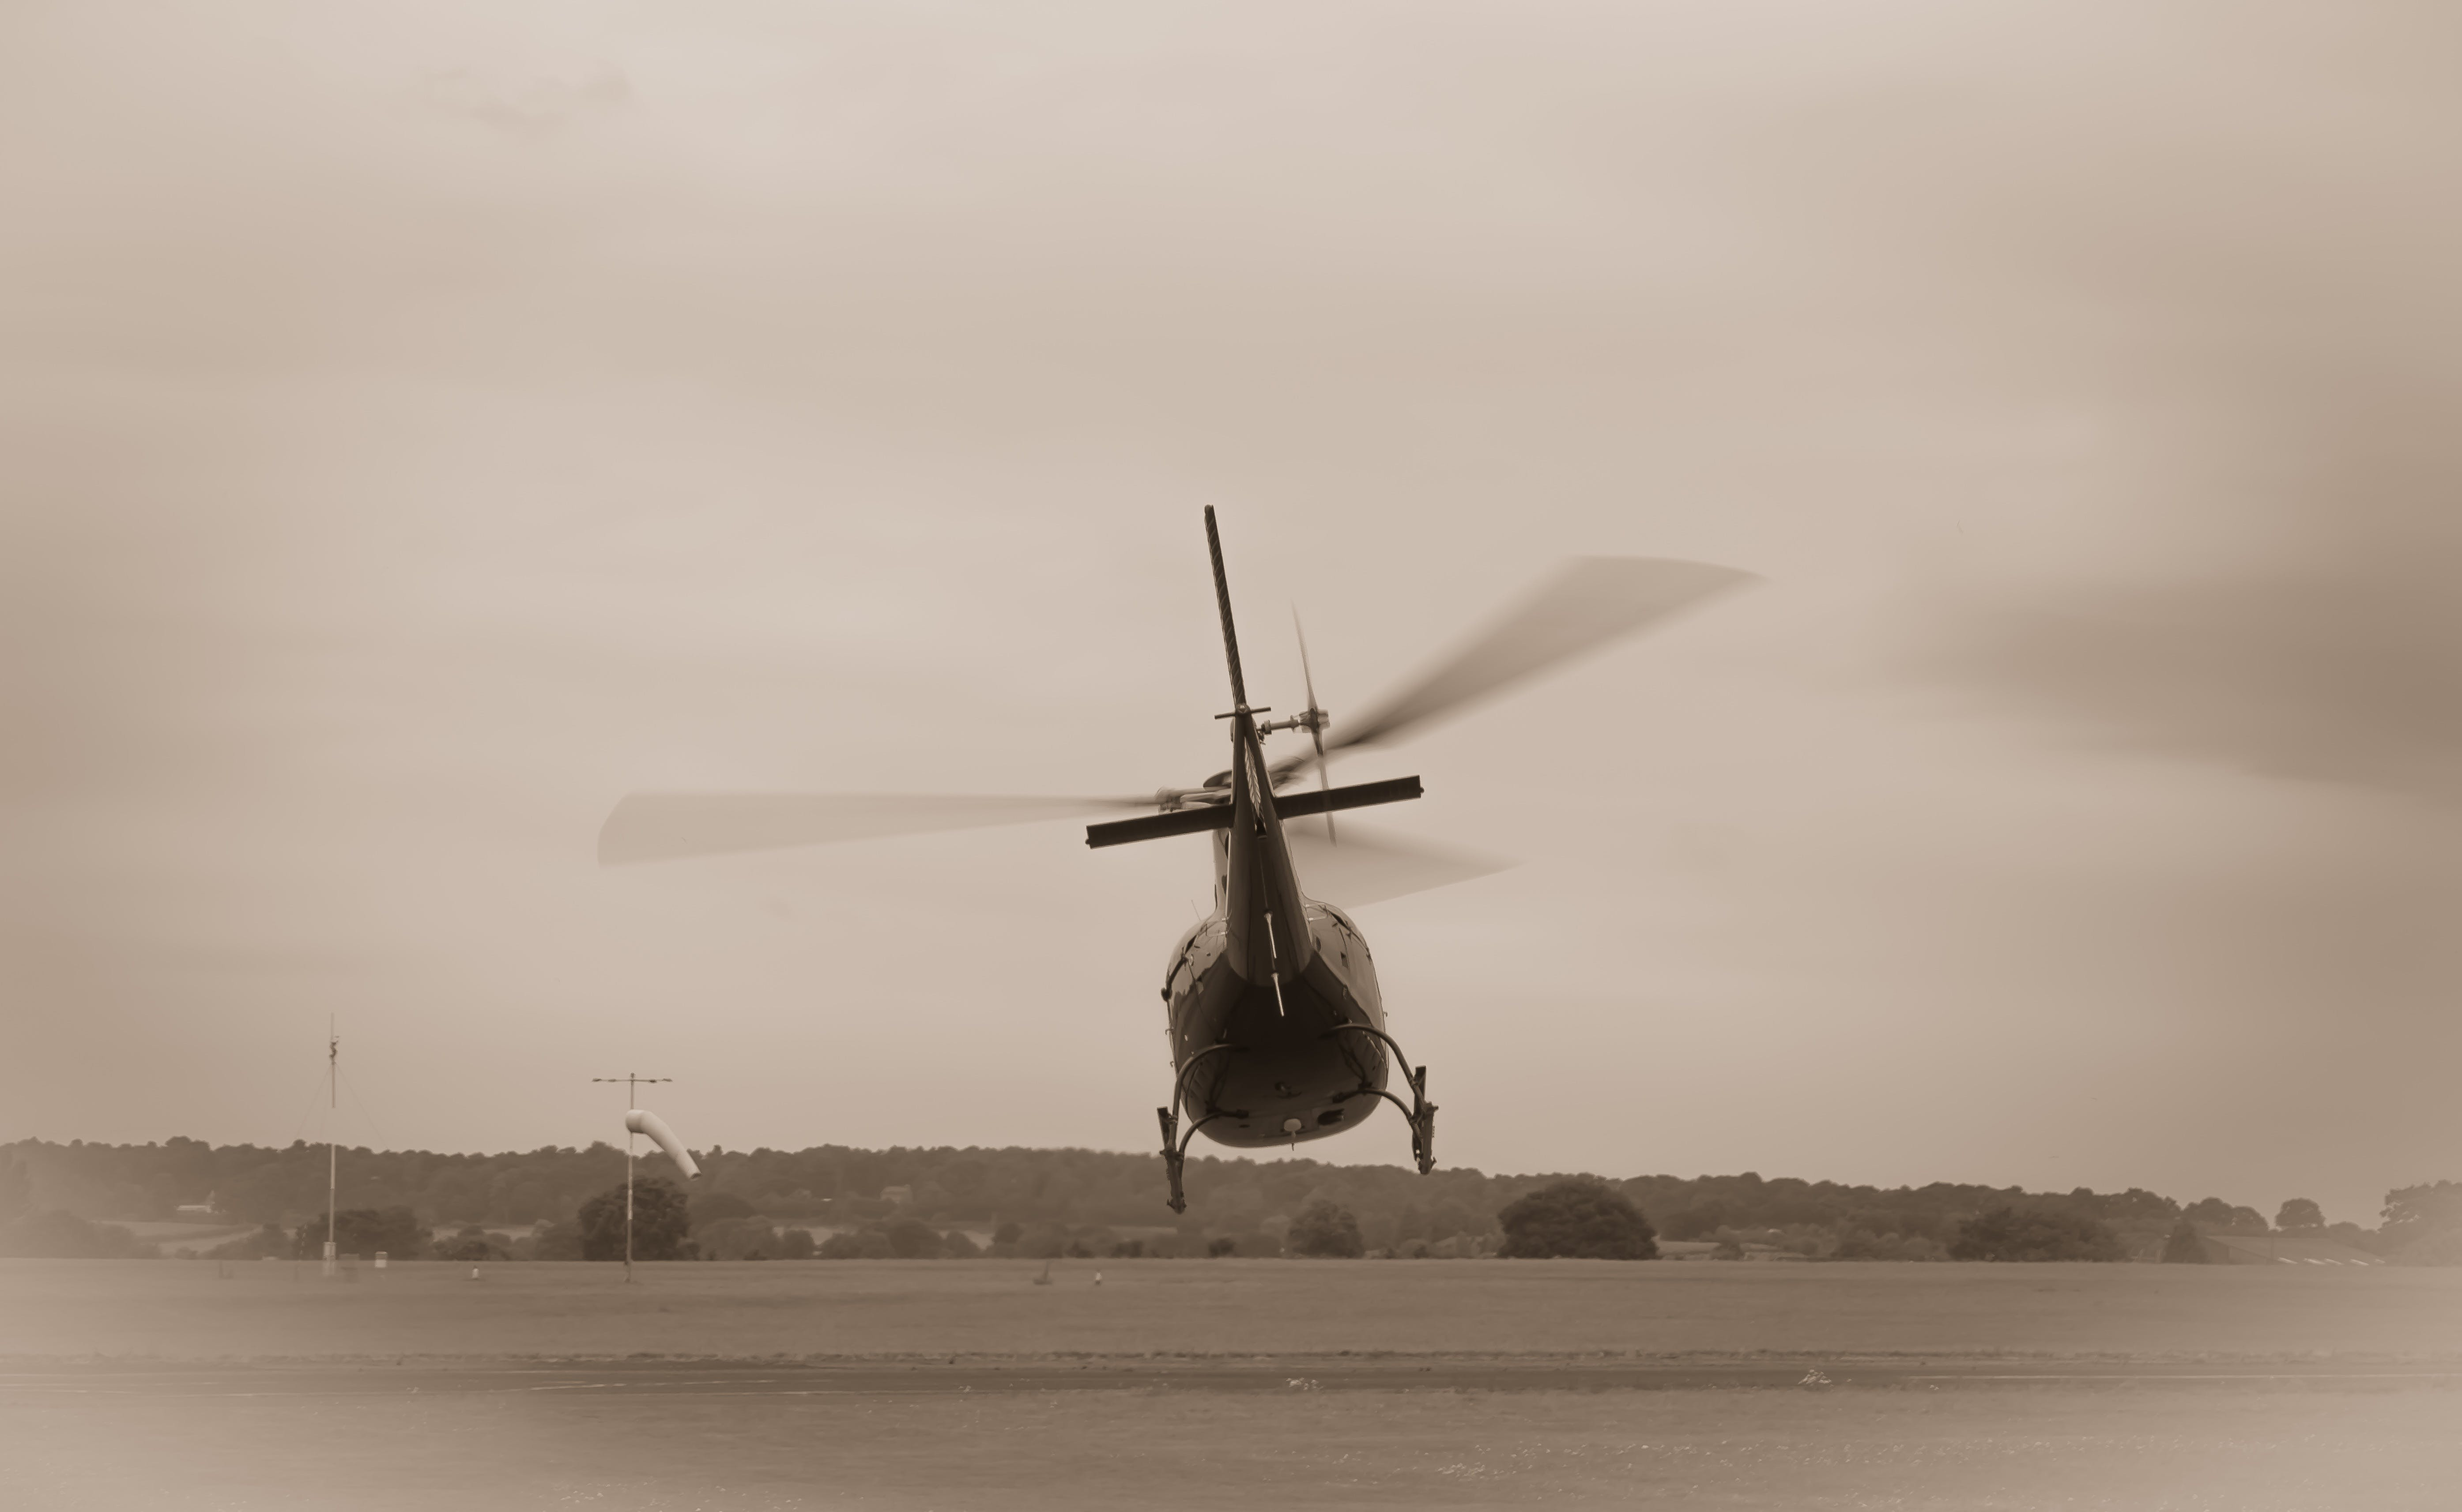 Grayscale Photo of Helicopter